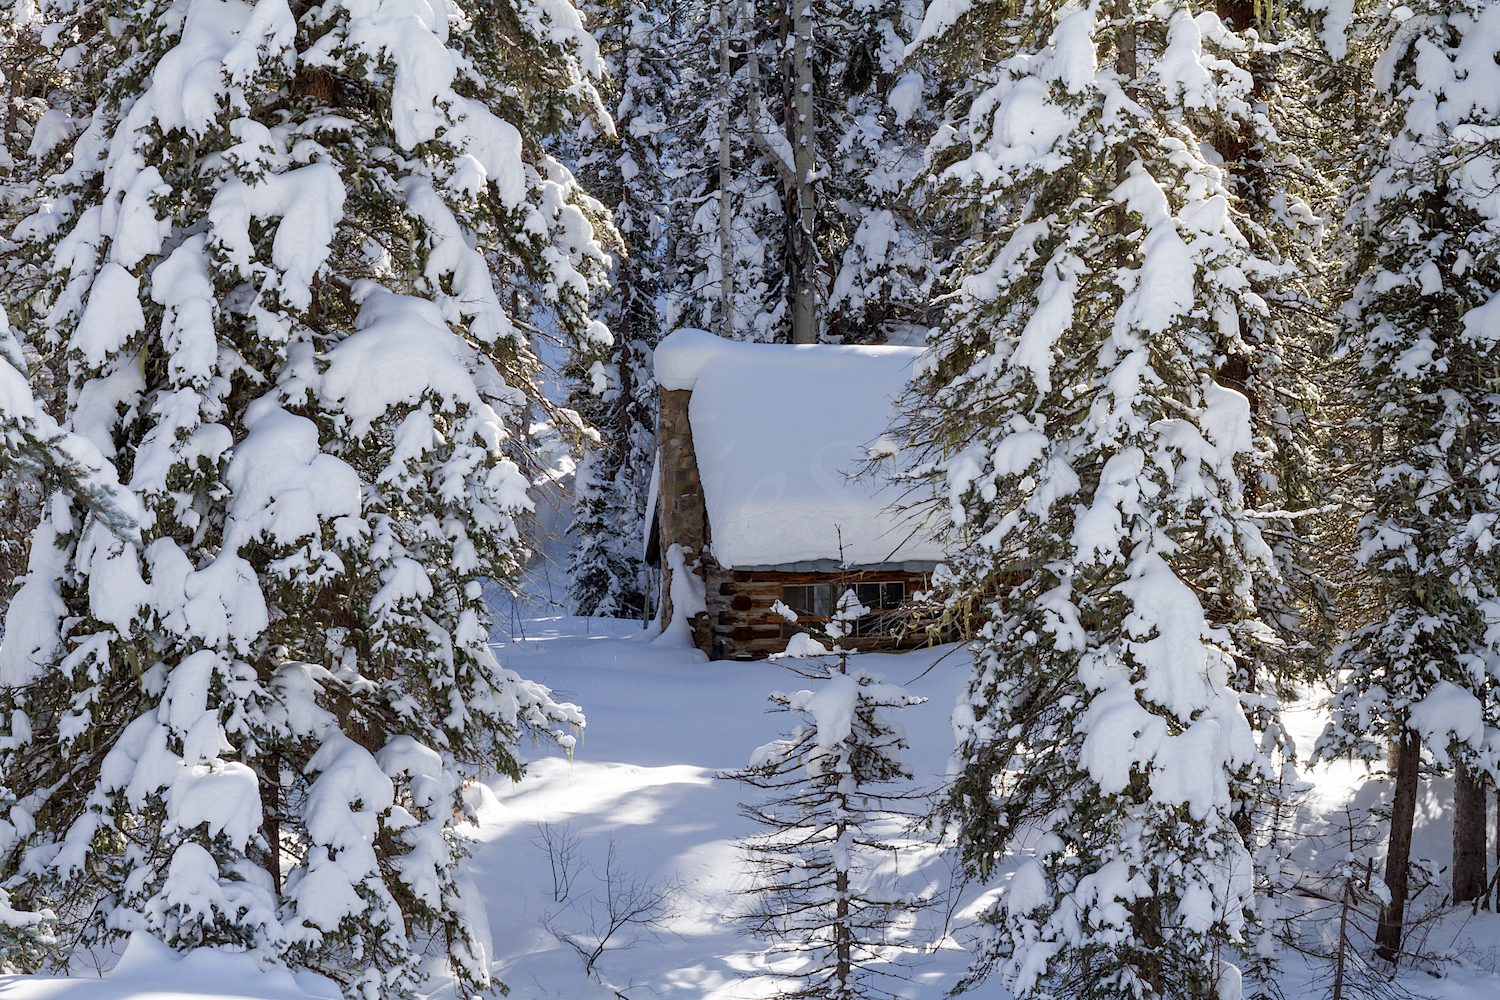 Little Cabin in the Woods, Image # 2307